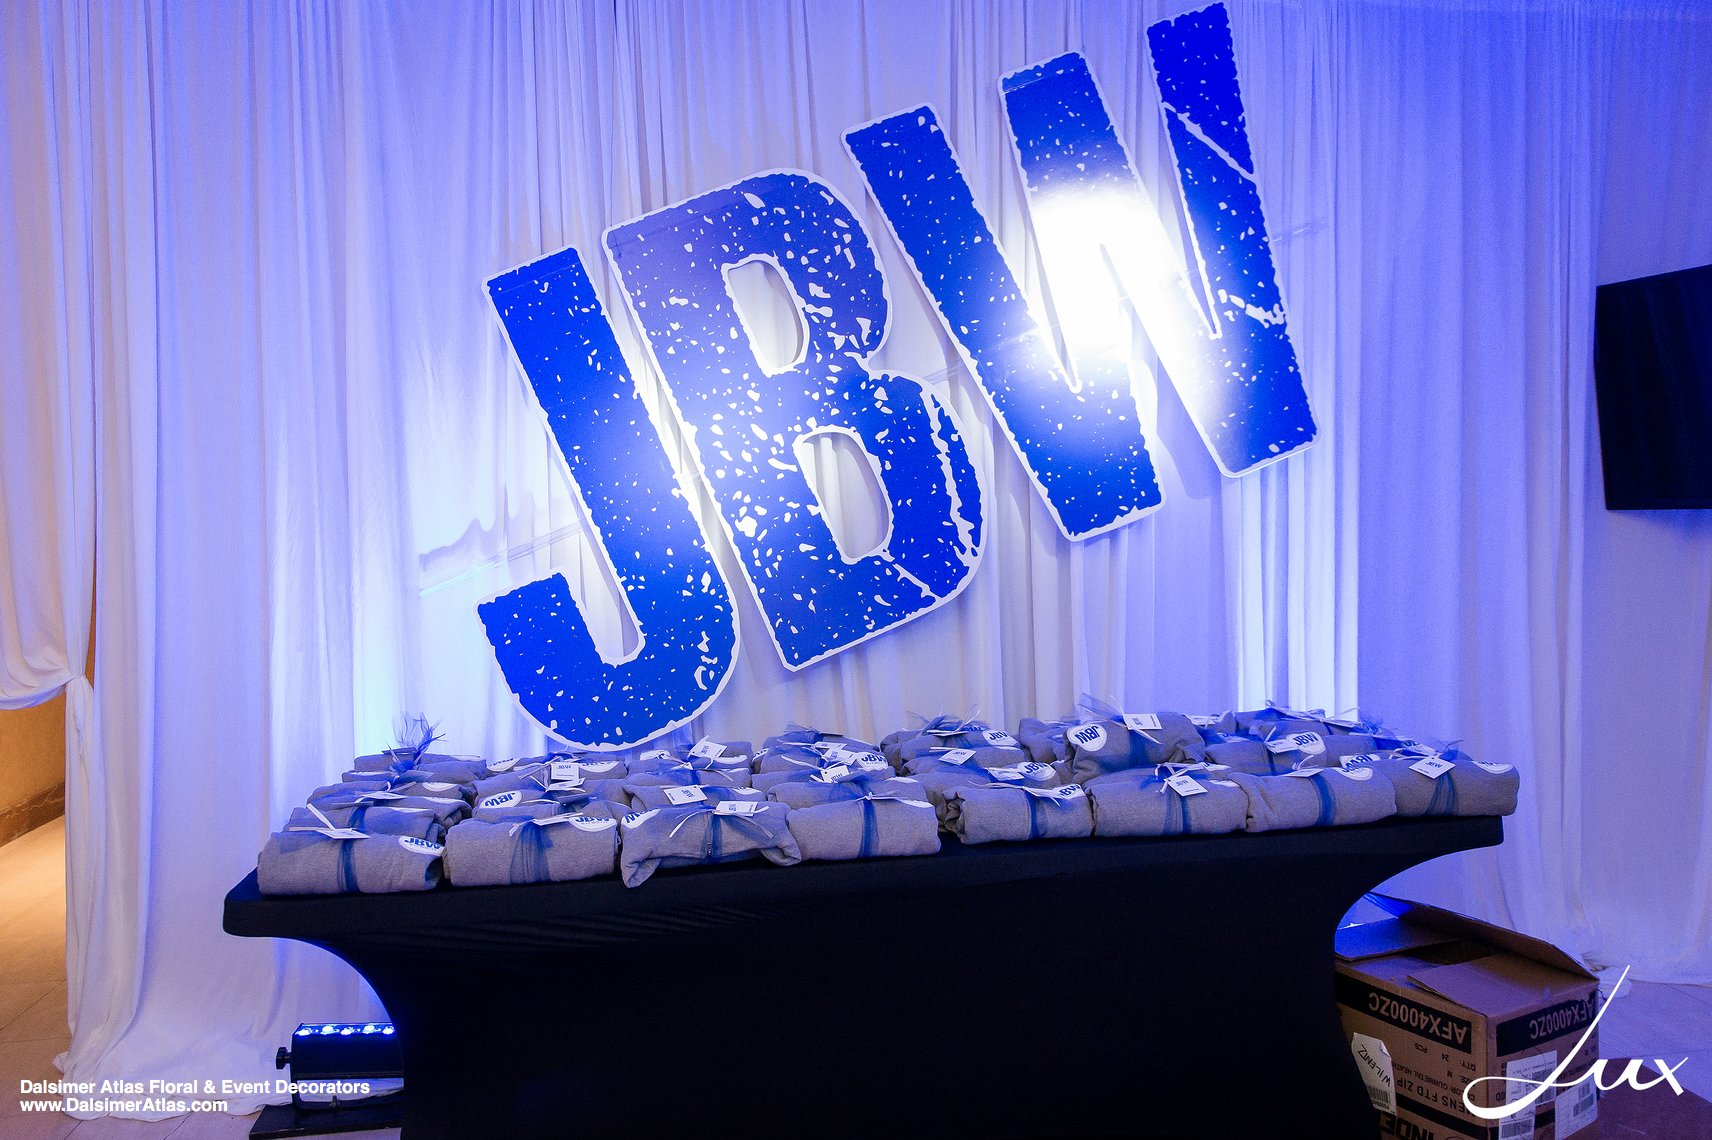 mitzvah-theme-decorations-bar-mitzvah-temple-solel-hollywood-florida-dalsimer-atlas-021718-81